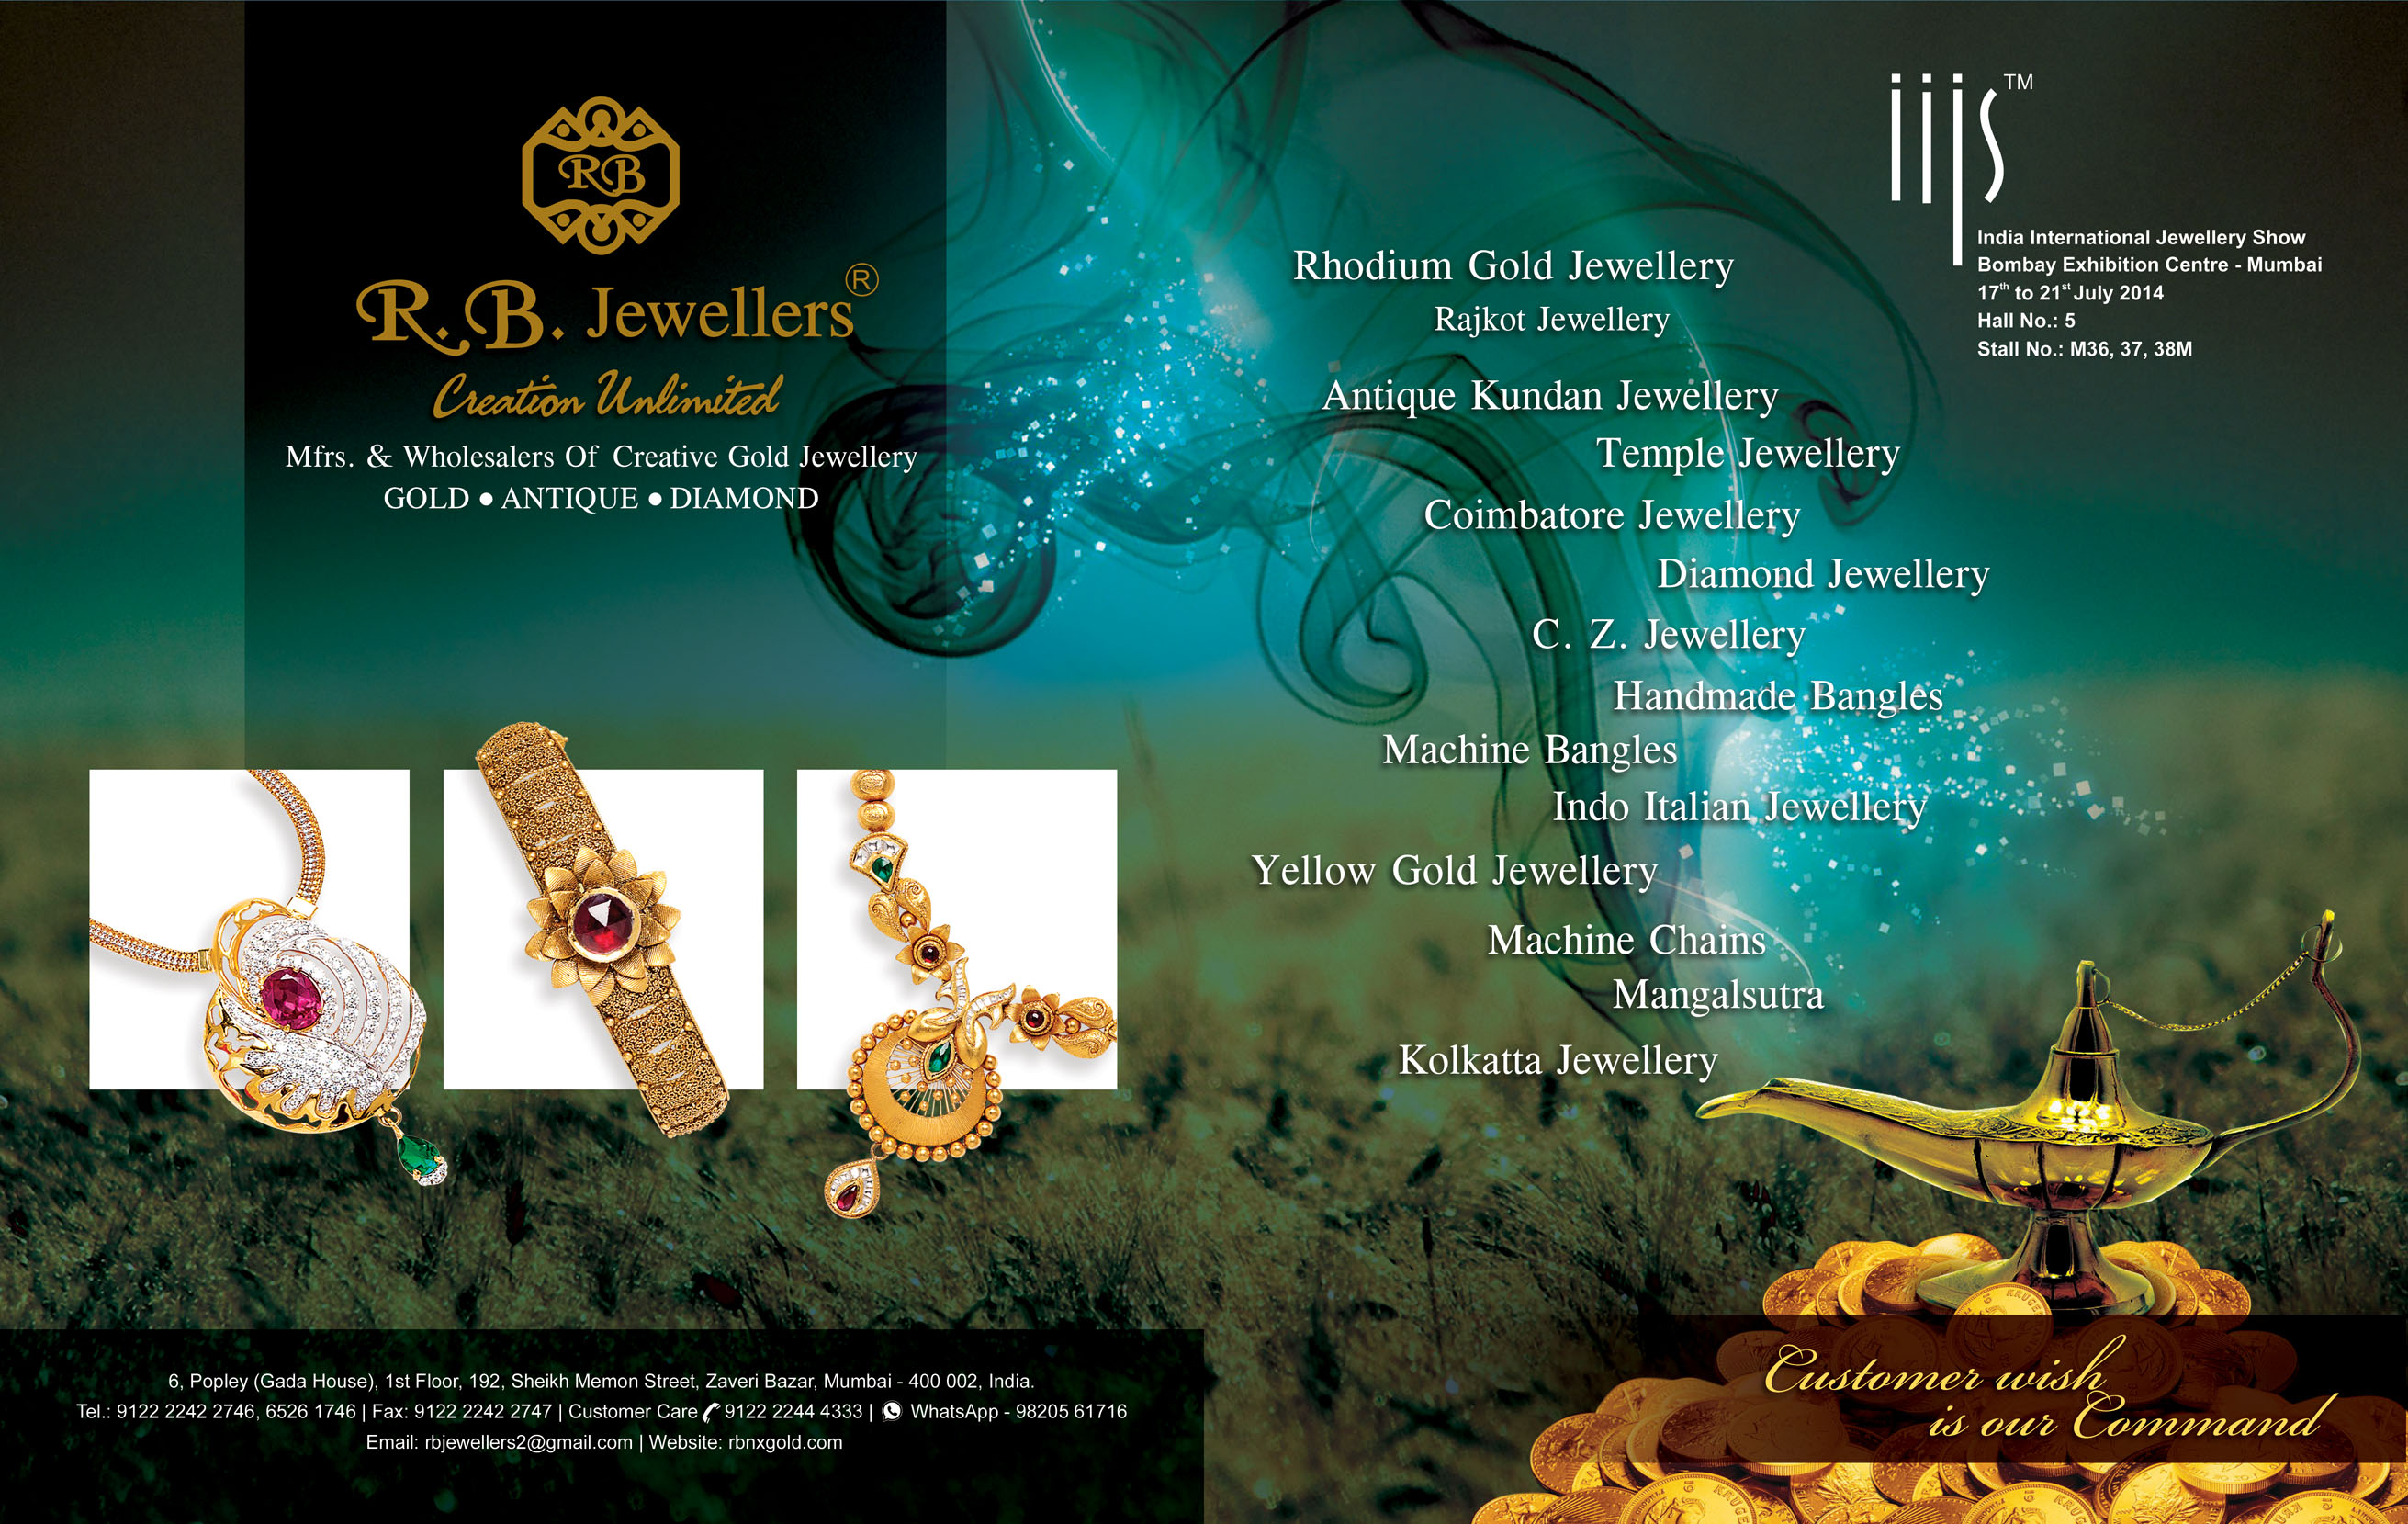 R.B. Jewellers Ad Campaign